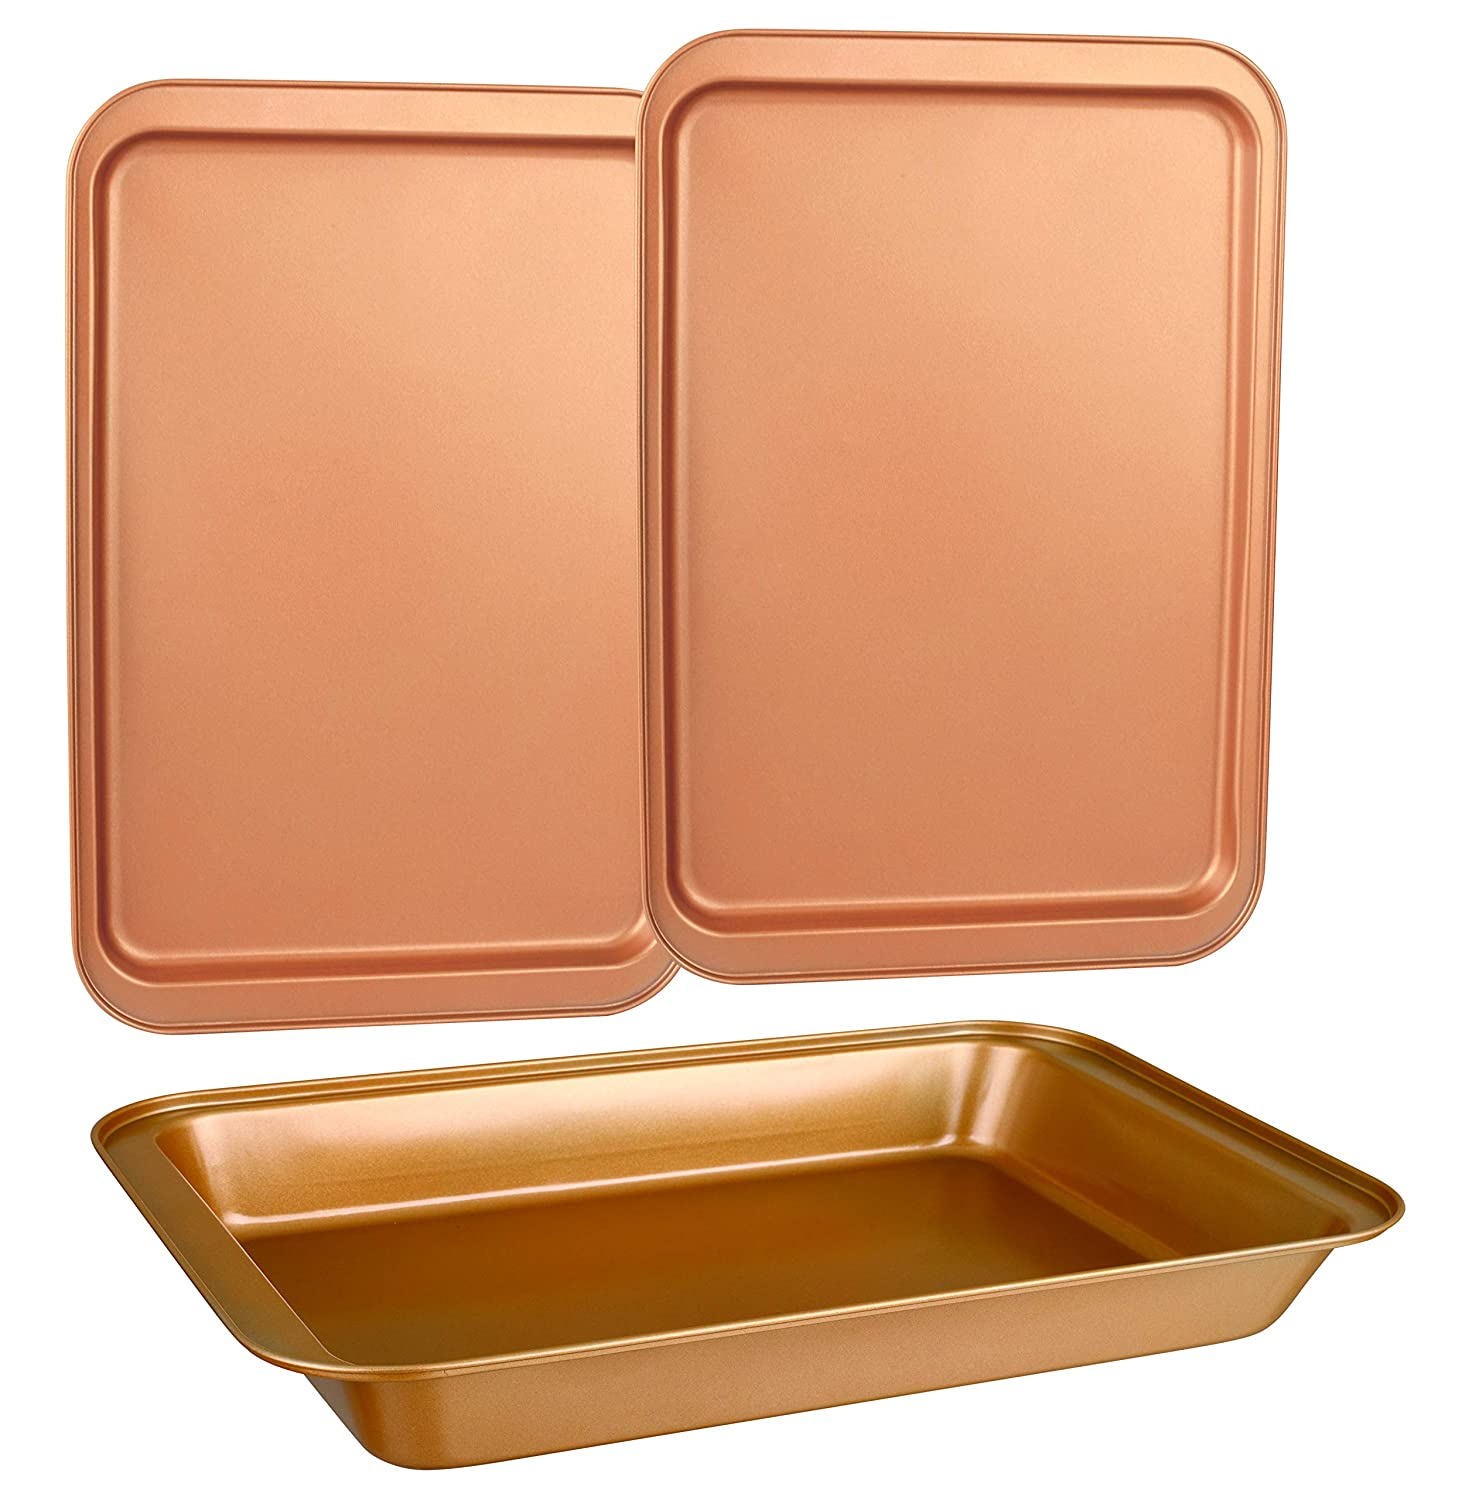 CopperKitchen Baking Pans - 3 pcs Toxic Free NONSTICK - Organic Environmental Friendly Premium Coating – Durable Quality - Rectangle Pan, Cookie Sheet - BAKEWARE SET (3)